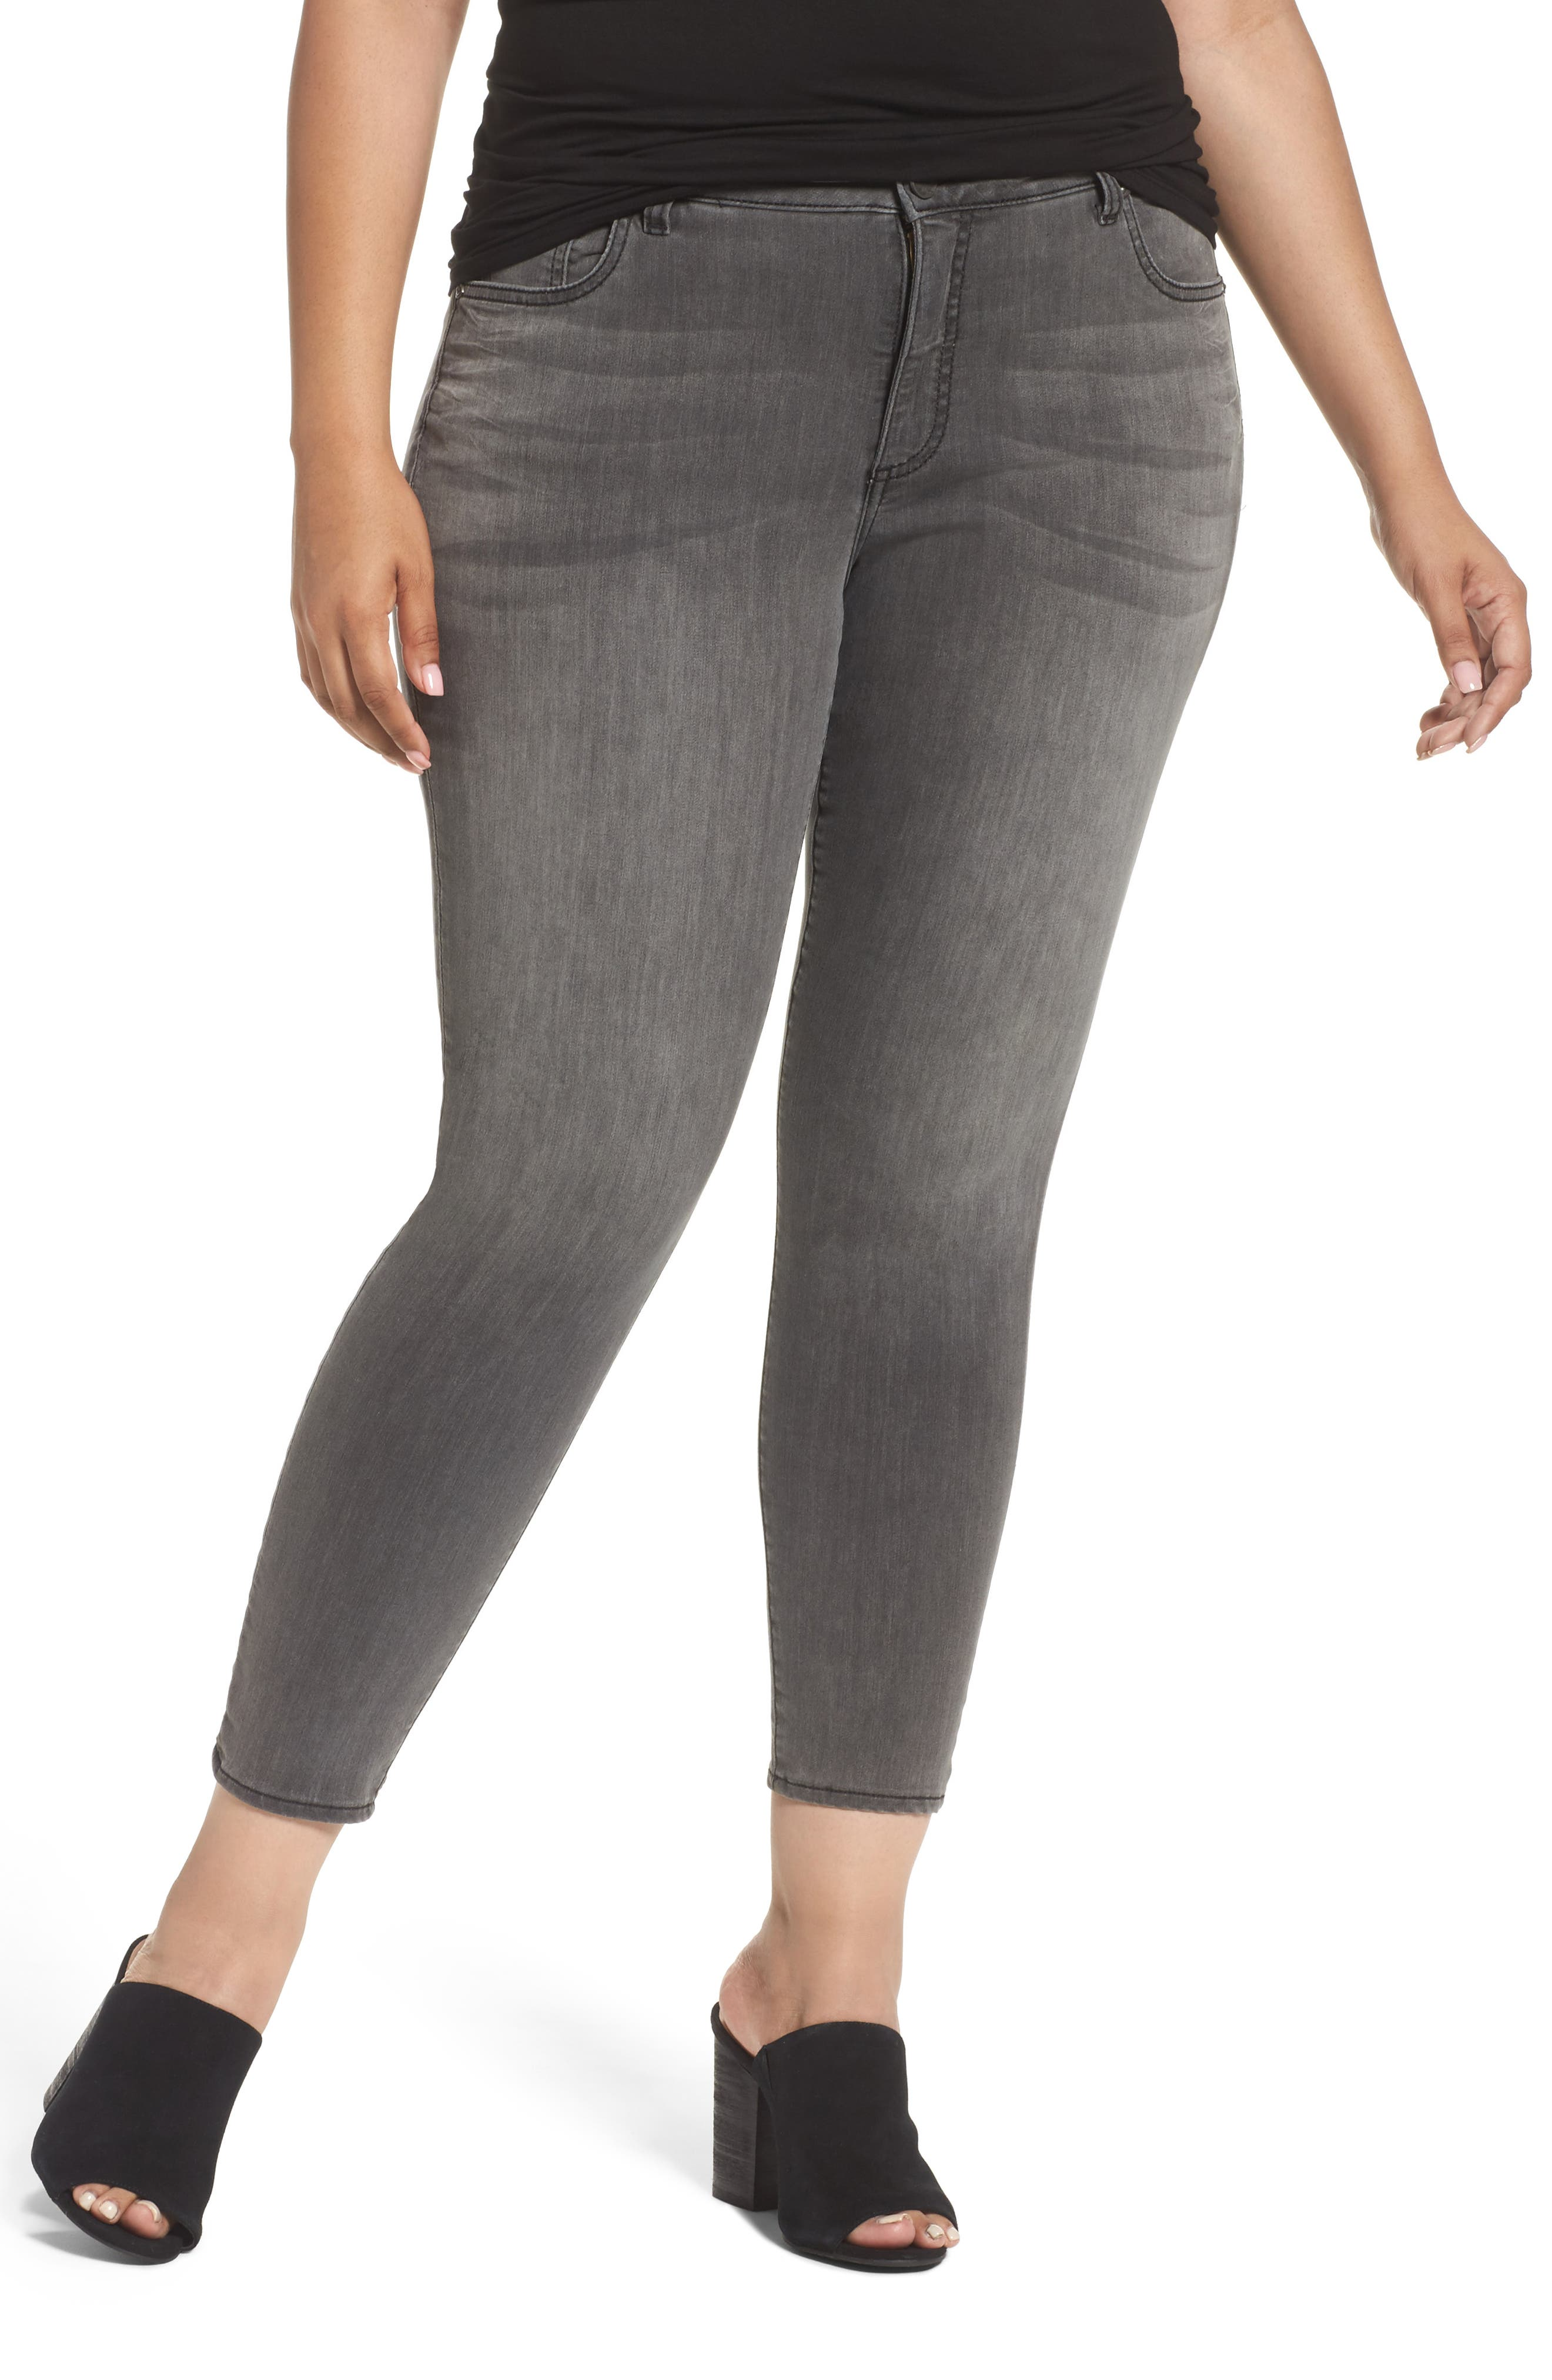 Plus Size Kut From The Kloth Donna High Waist Skinny Jeans, Blue